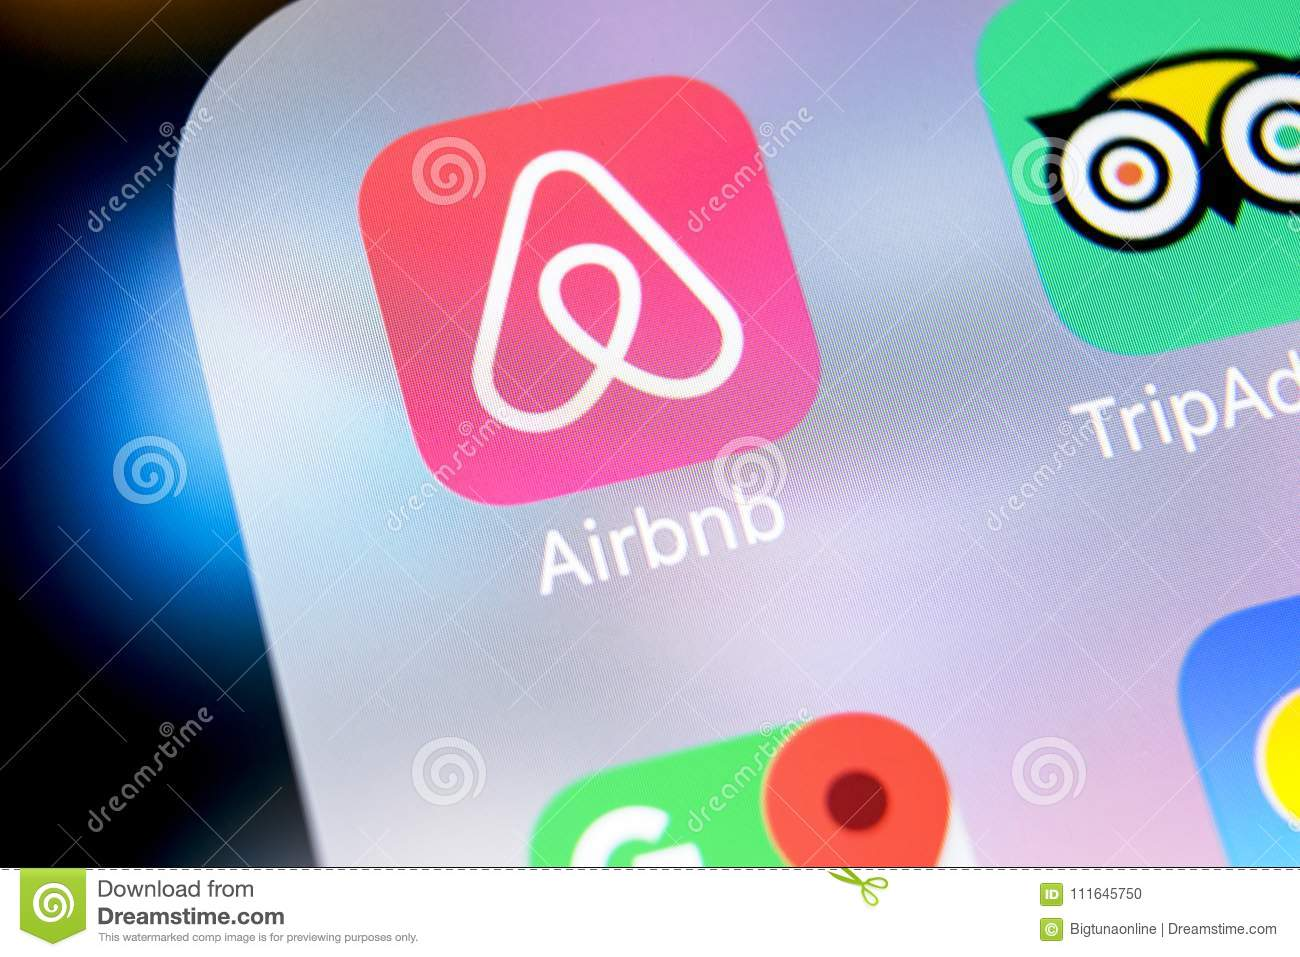 Airbnb Application Icon On Apple IPhone X Screen Close-up